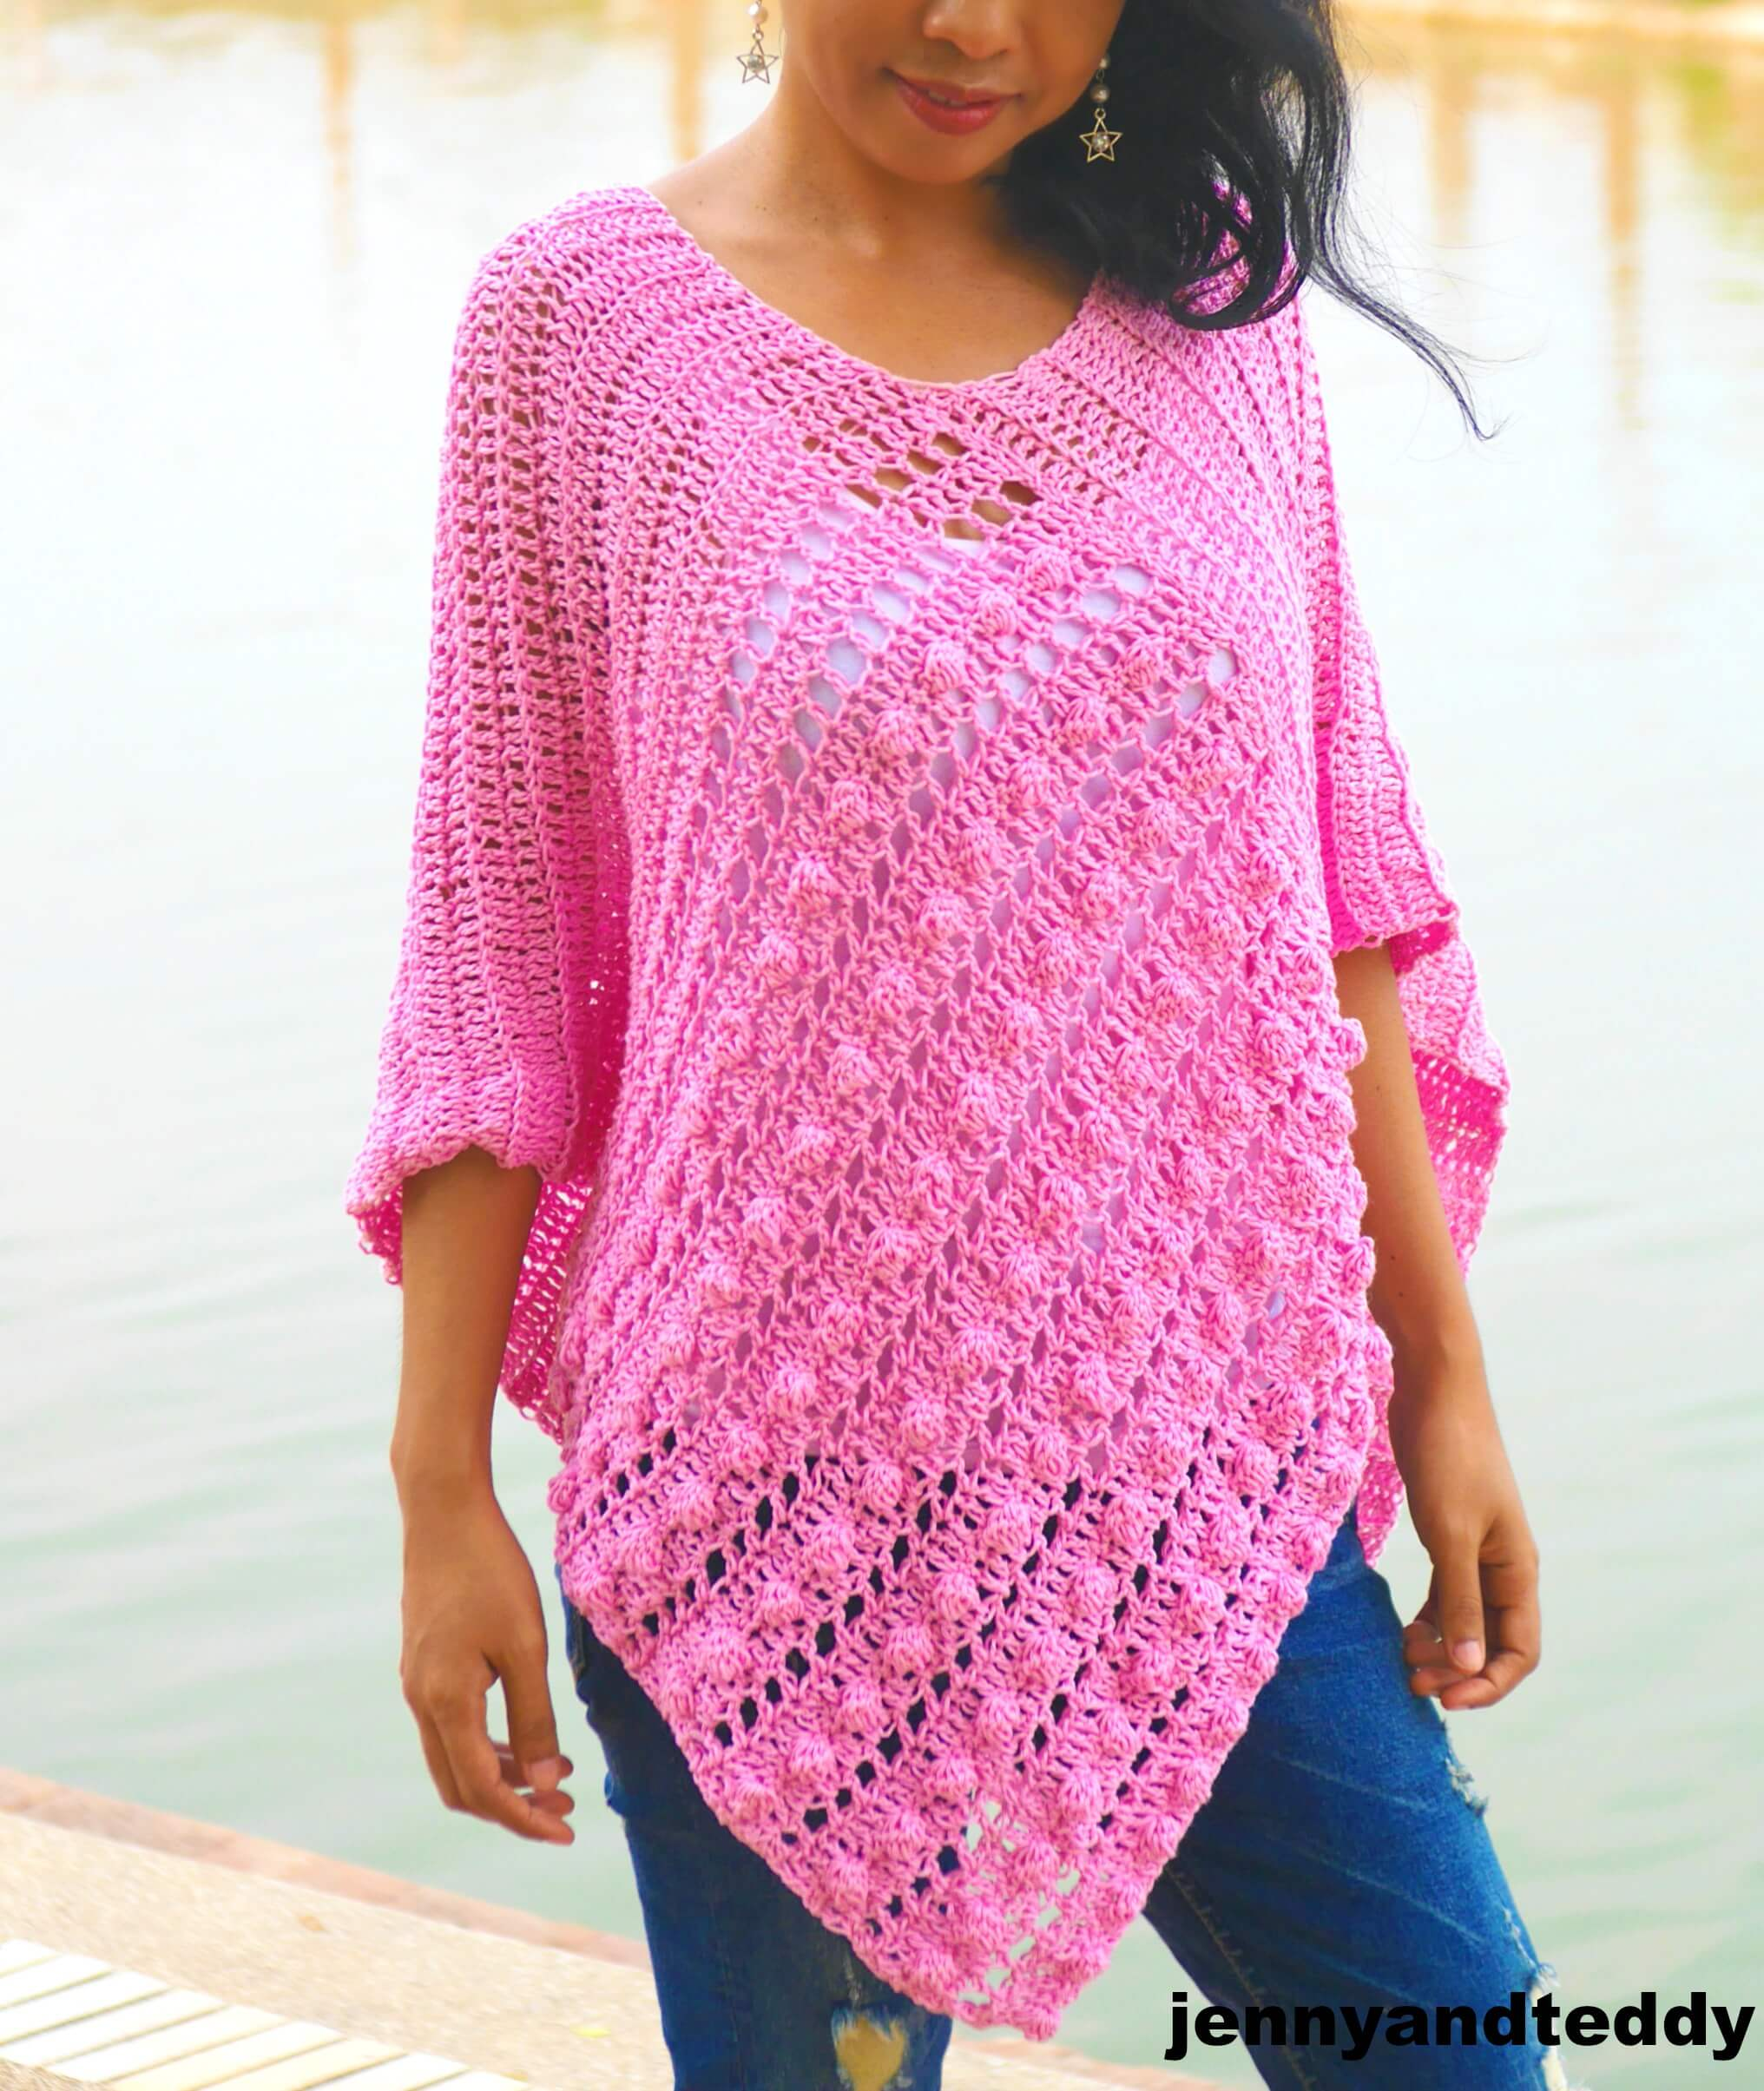 Bubble gum easy crochet poncho free pattern | jennyandteddy